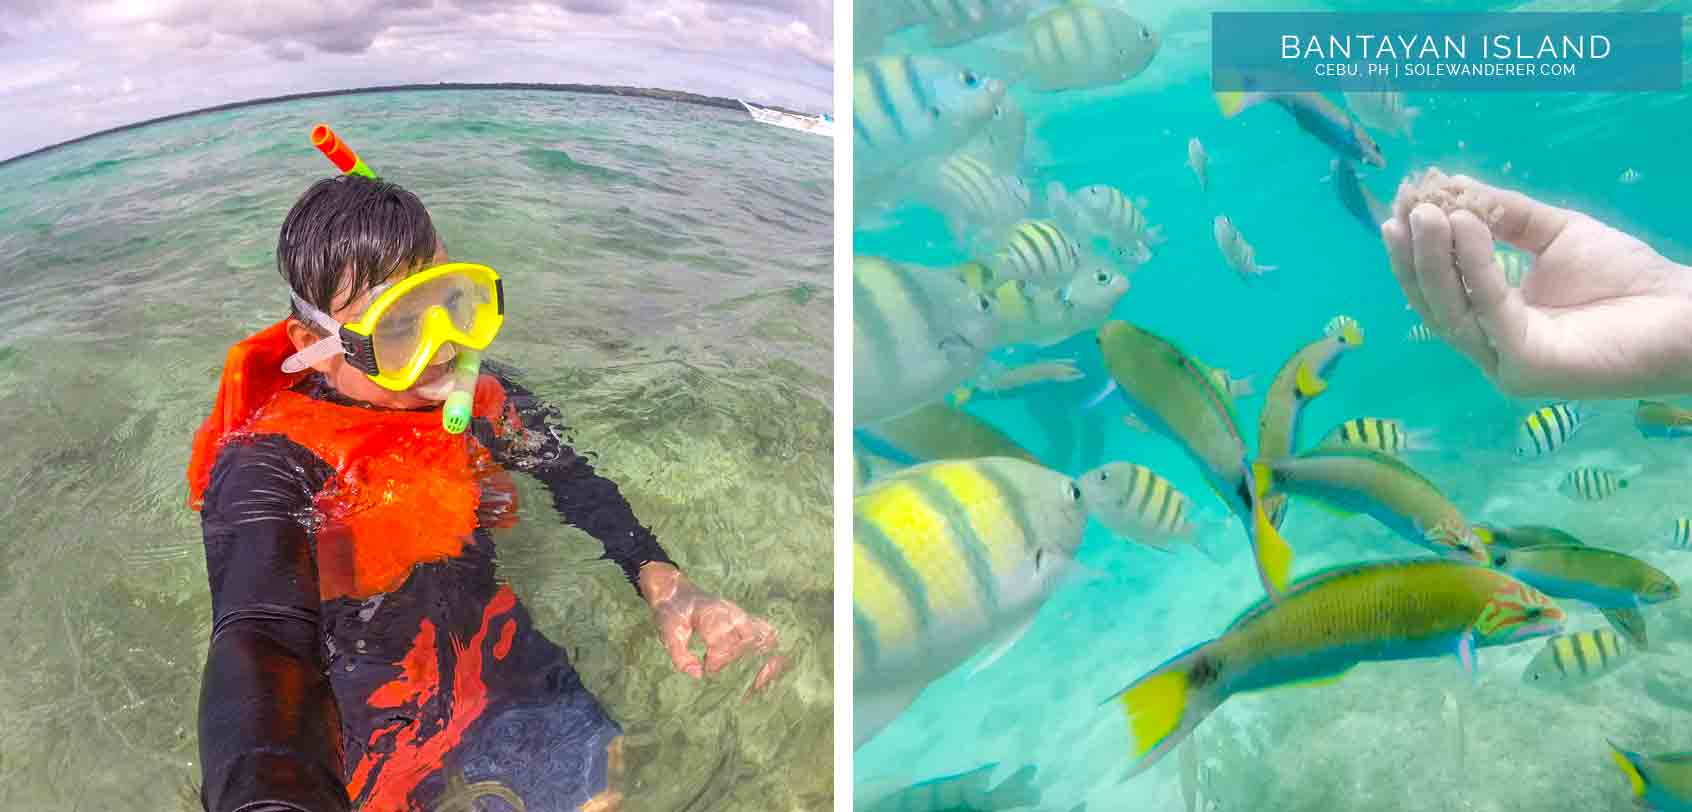 Virgin Island Activities - Ultimate Travel Guide for First Timers Bantayan Island